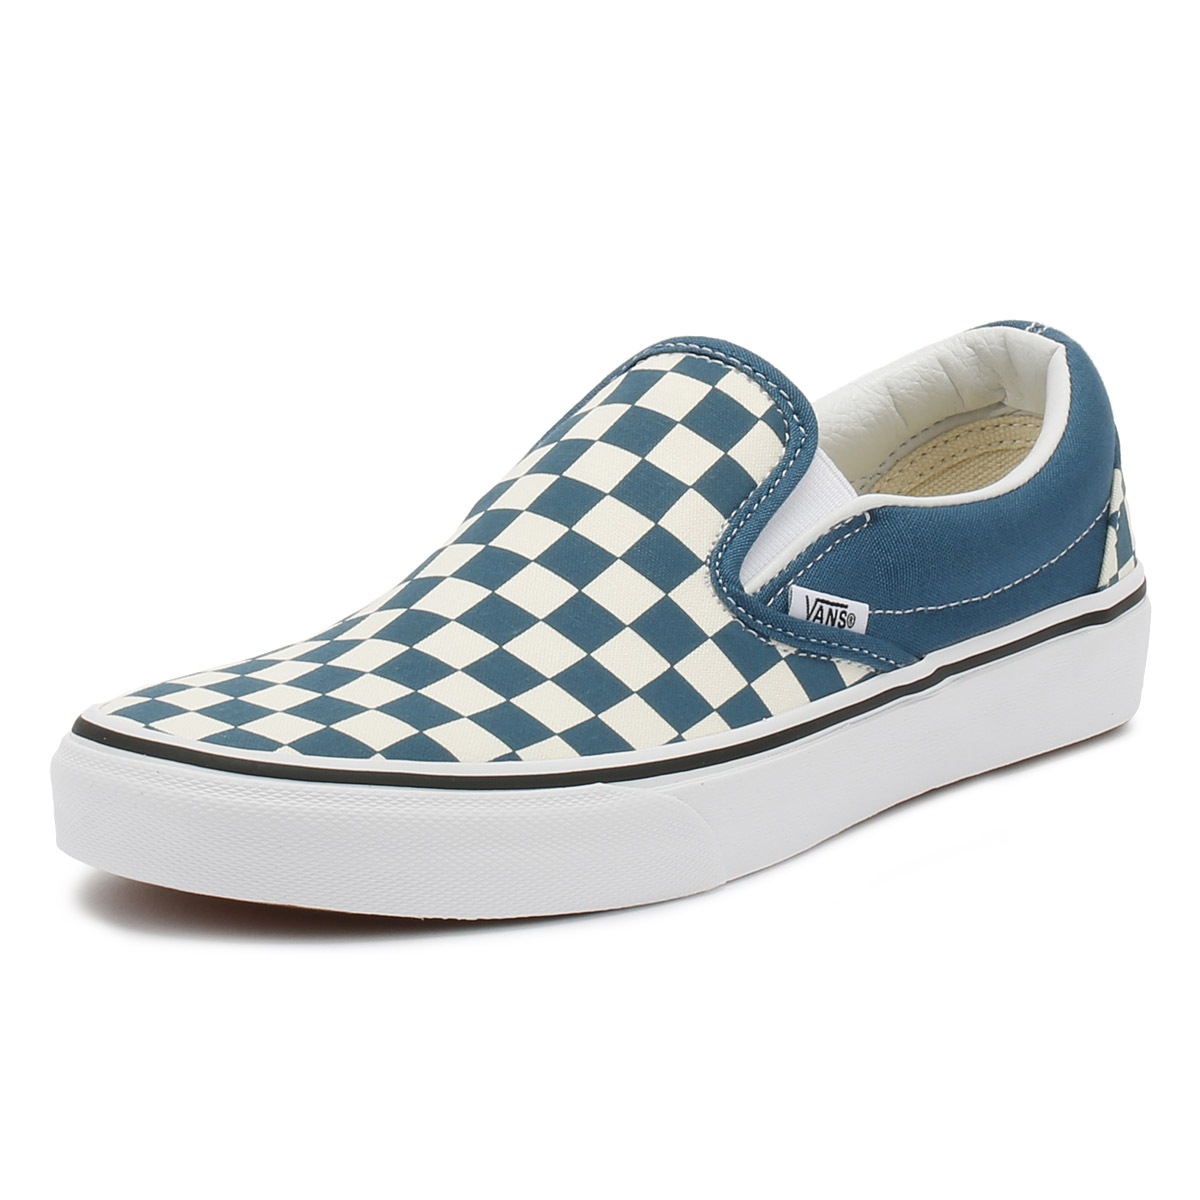 5cce9518acc6 Details about Vans Unisex Trainers Corsair   True White Checkerboard  Classic Slip On Shoes